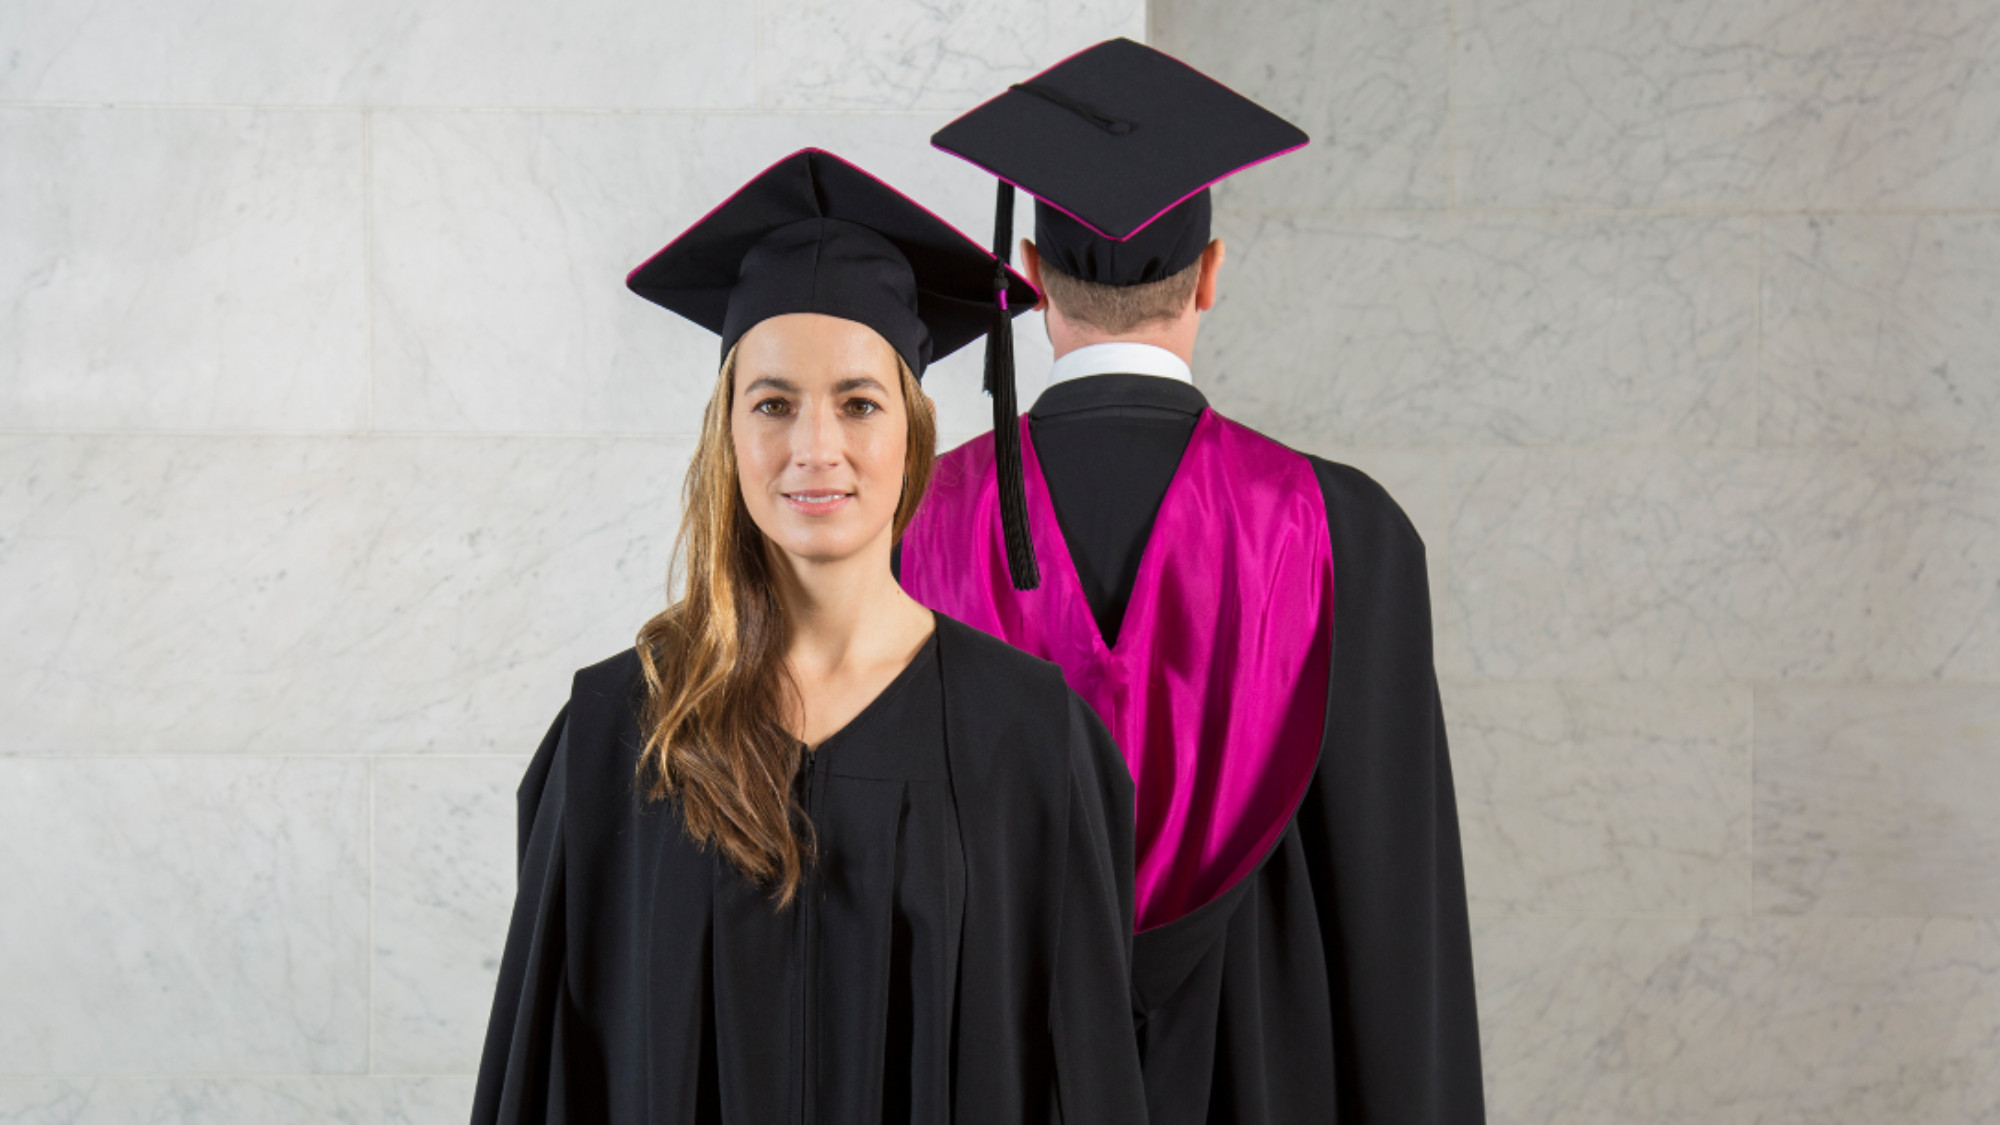 woman and man in graduation attire